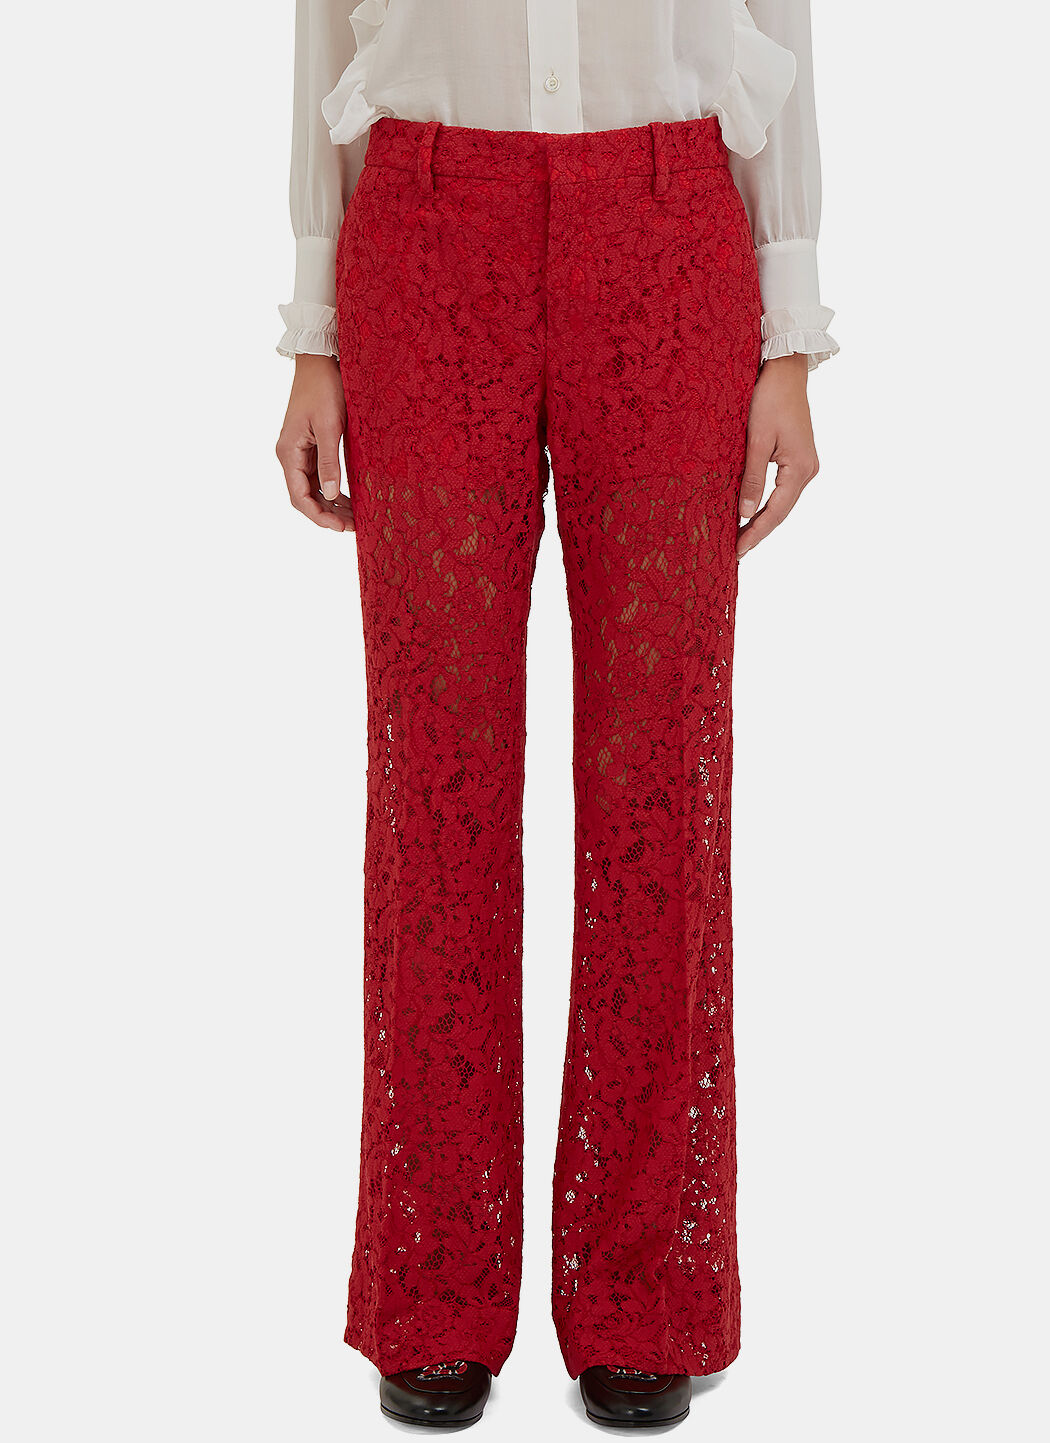 Gucci Cottons Women's Floral Lace Flared Pants in Red